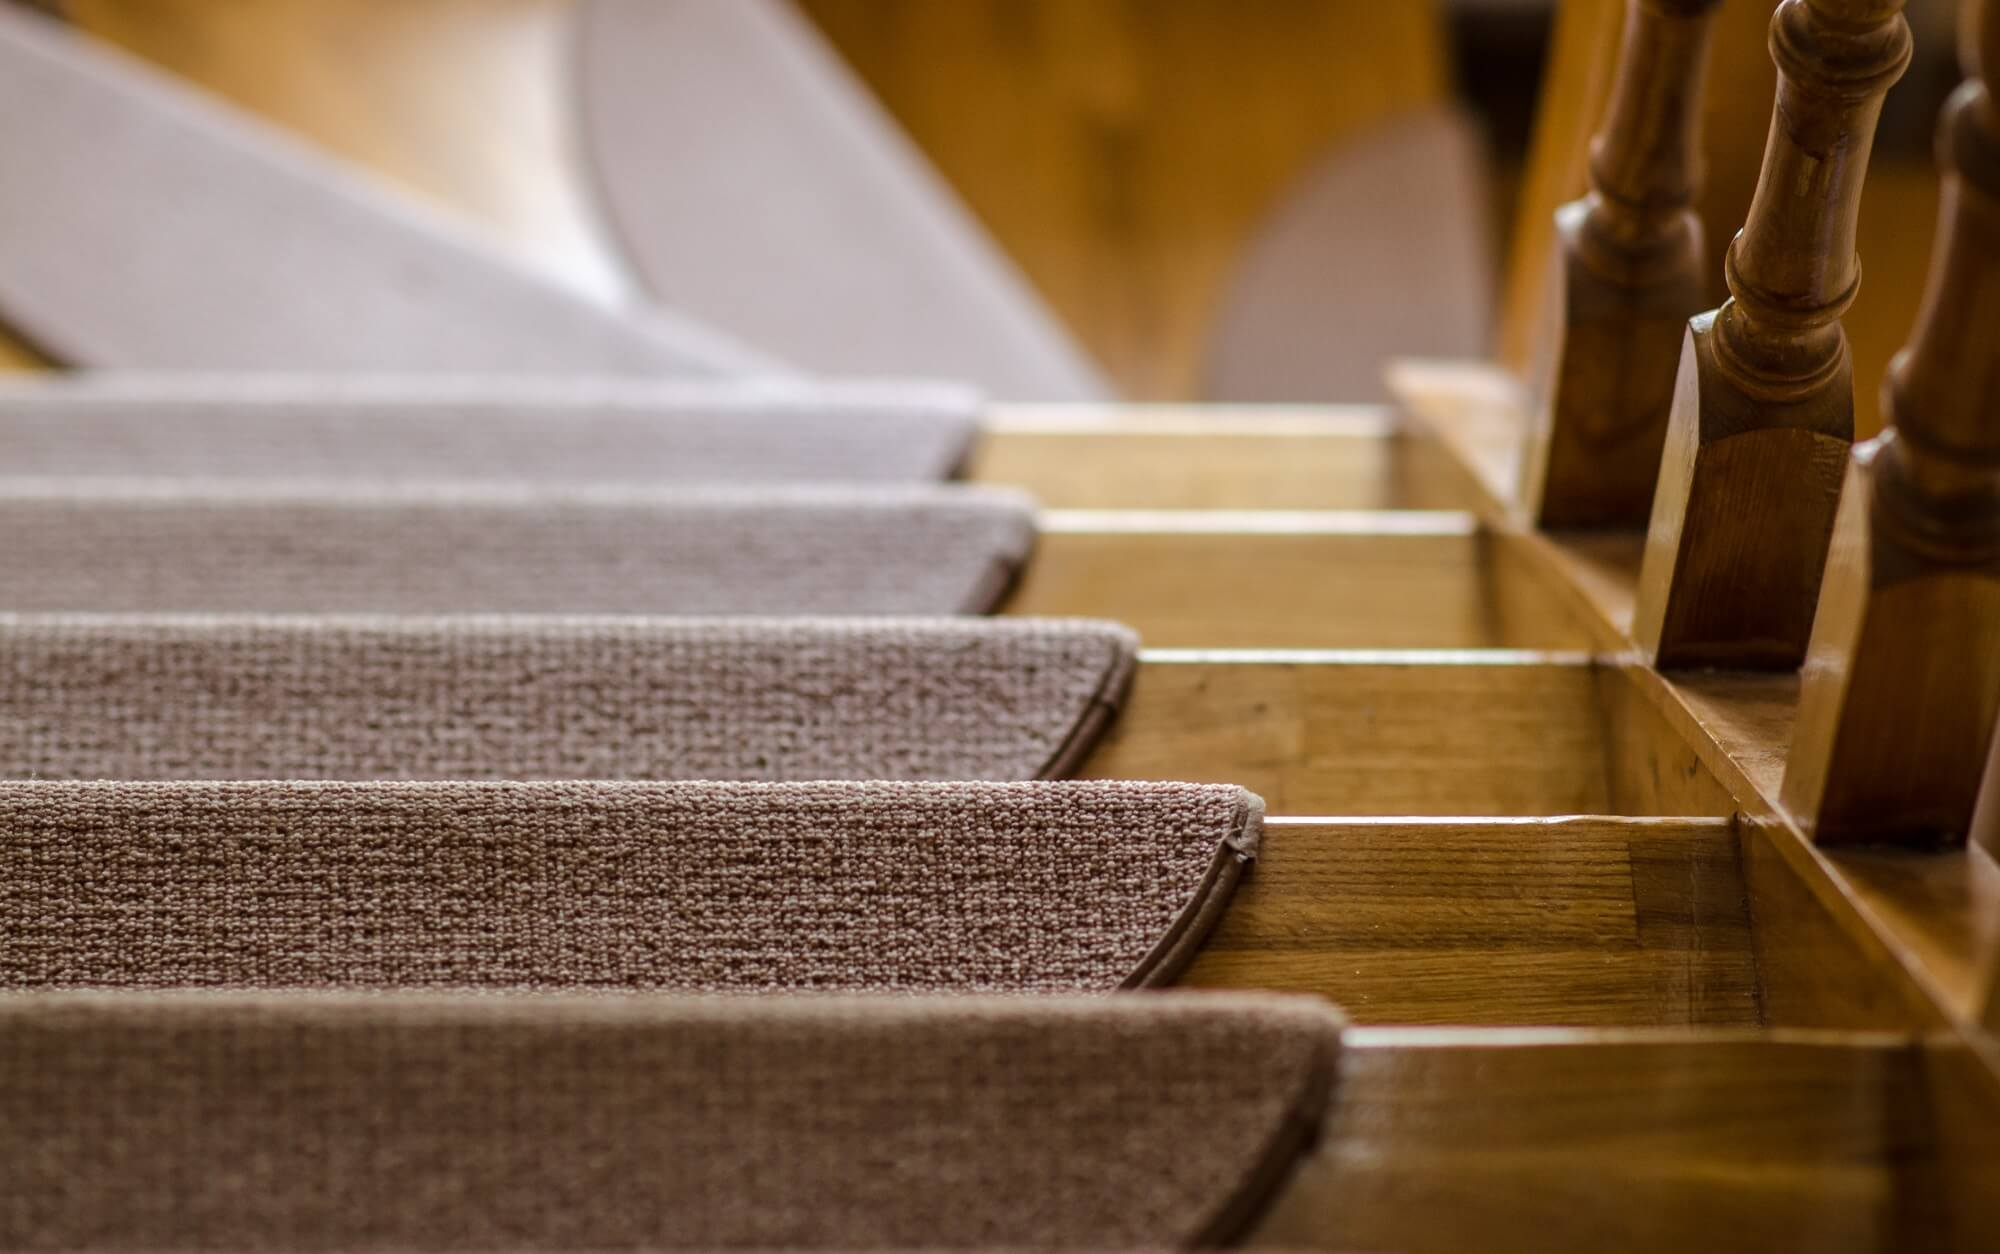 How To Choose A Style Of Stair Tread Nosing Builddirect Blog Life At Homebuilddirect Blog Life At Home